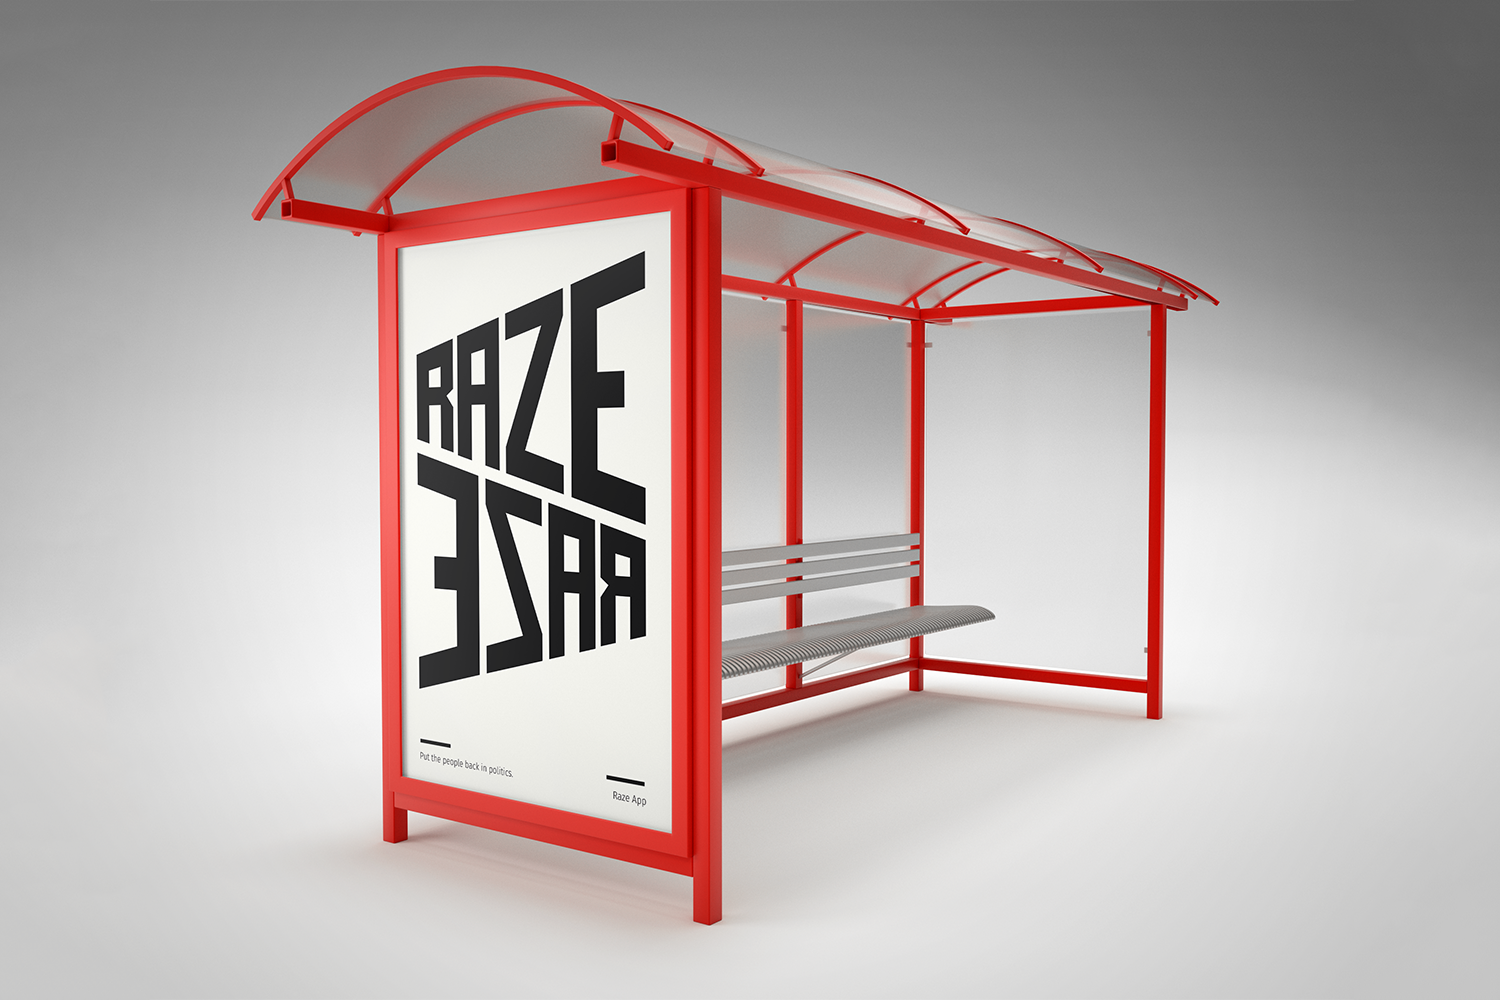 A bus stop advertisement for the Raze mobile app